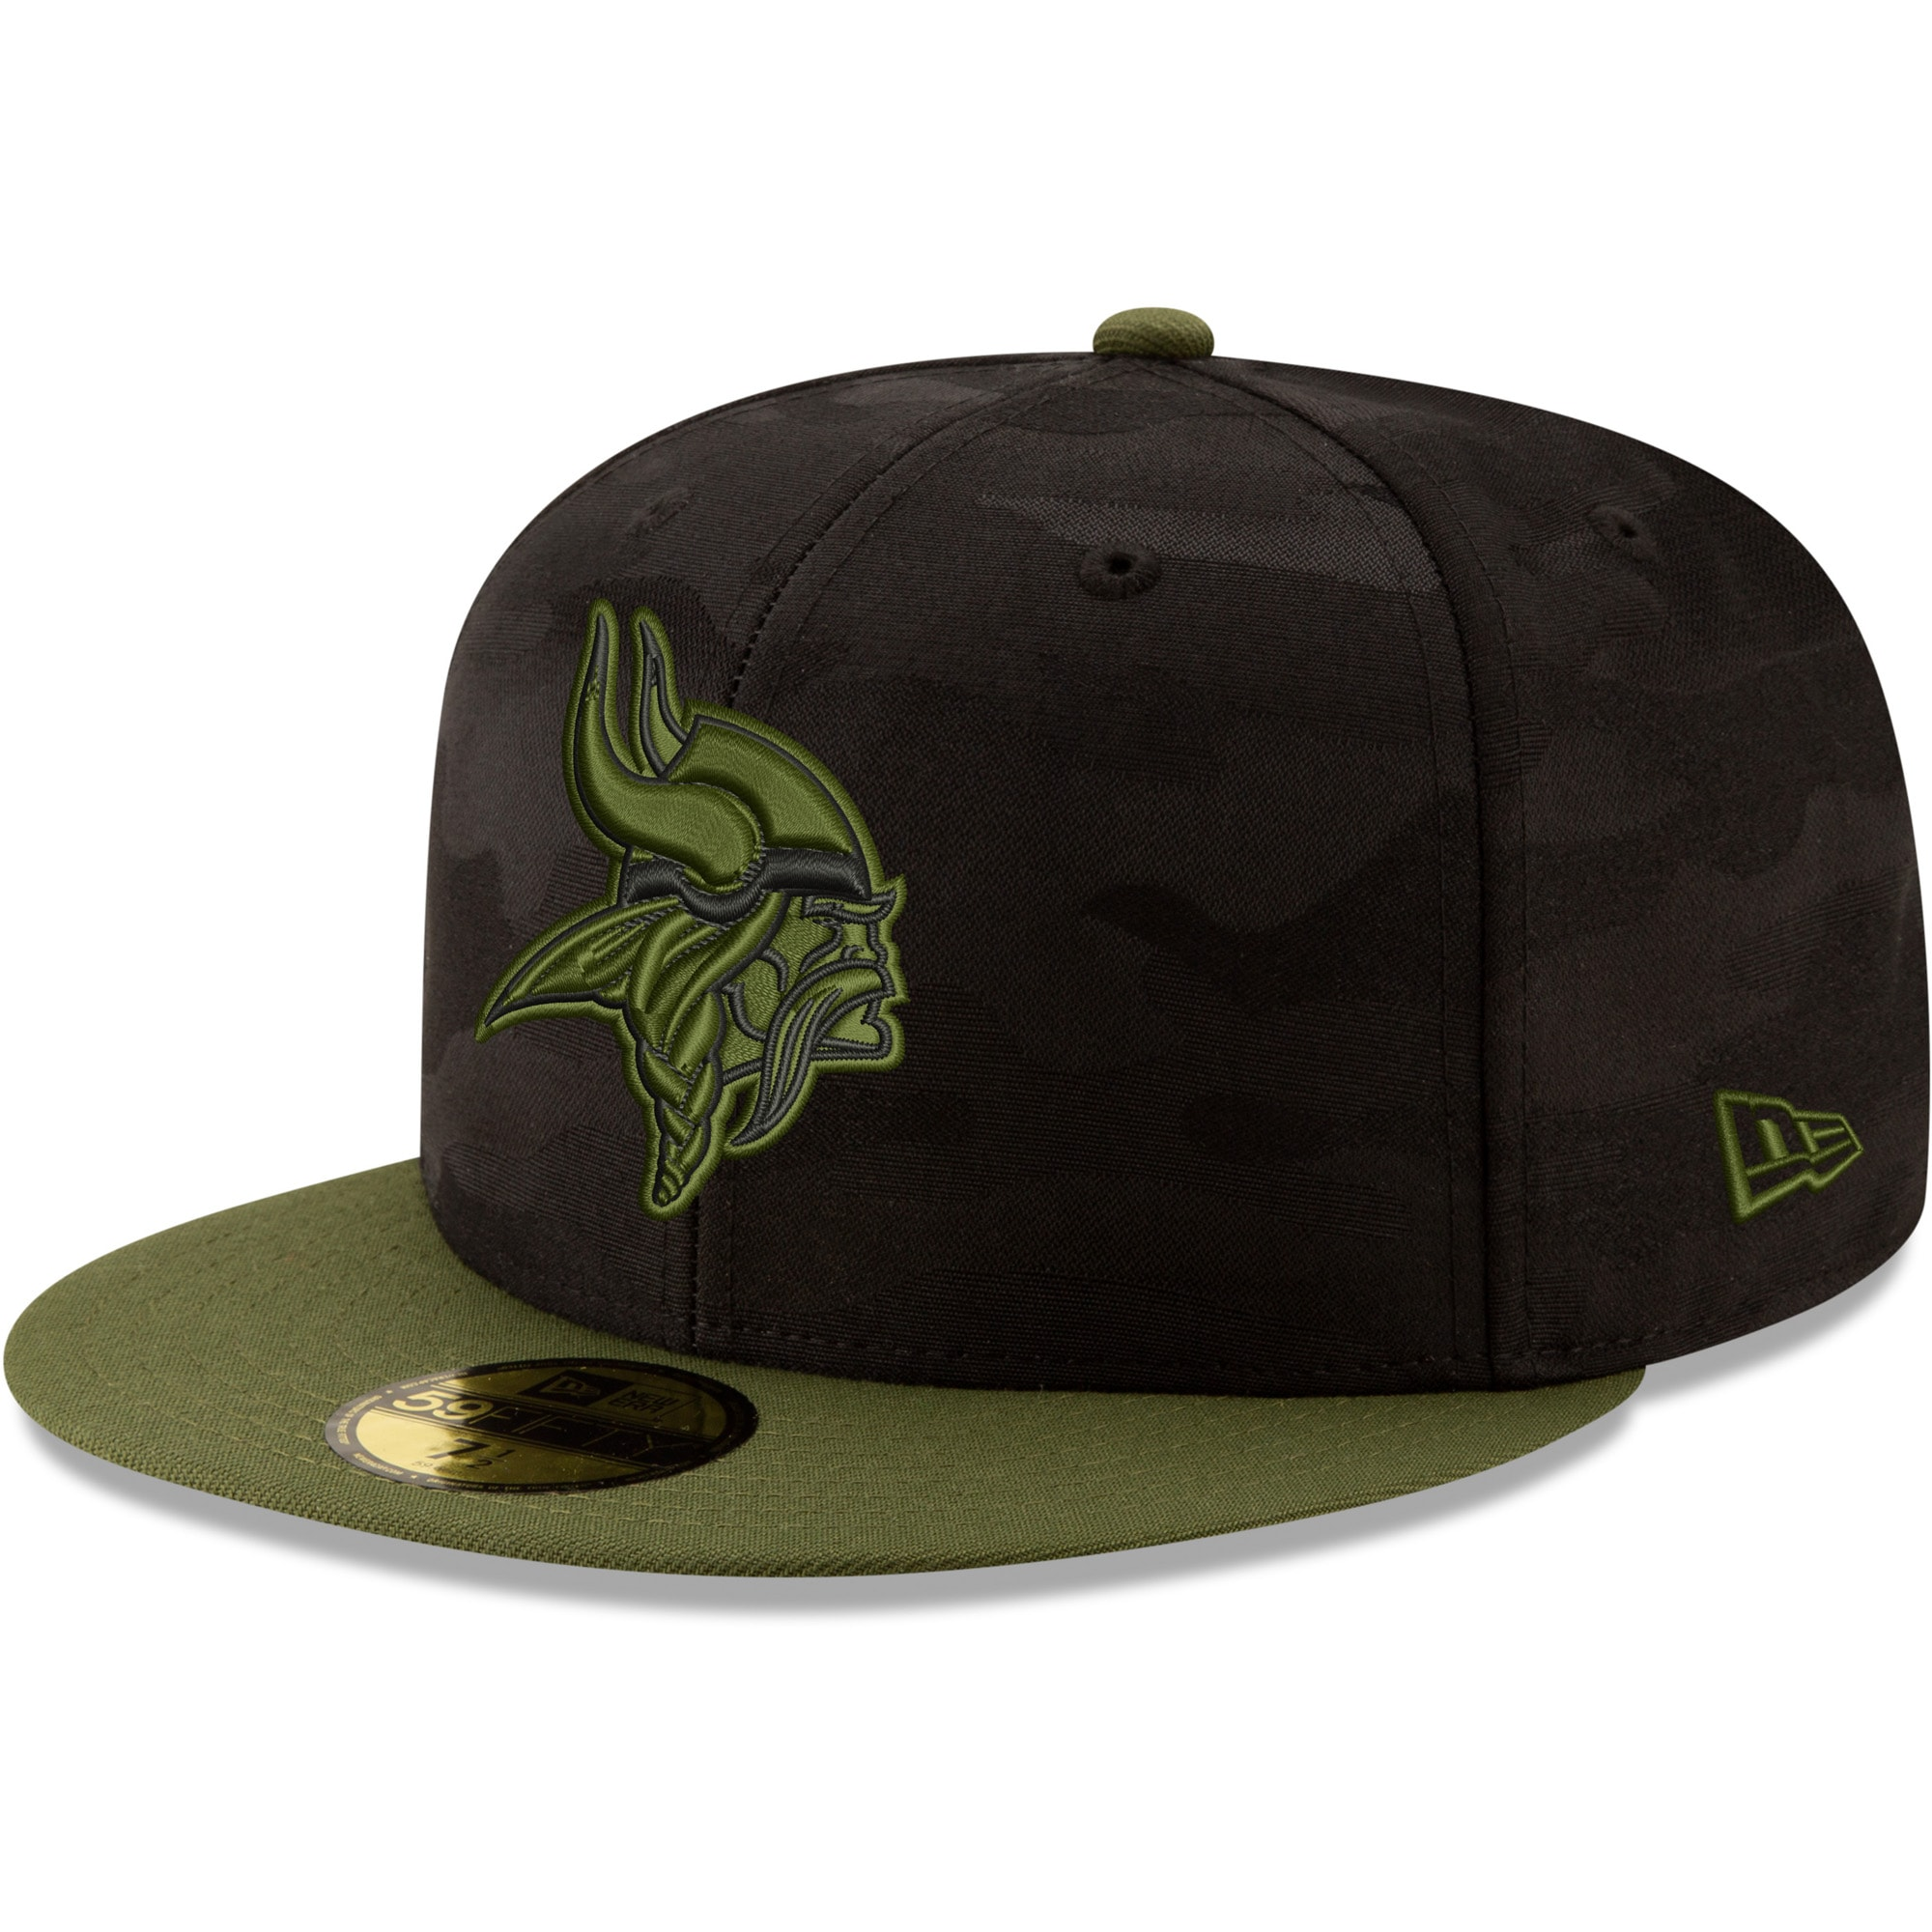 Minnesota Vikings New Era Camo Royale 59FIFTY Fitted Hat - Black/Olive